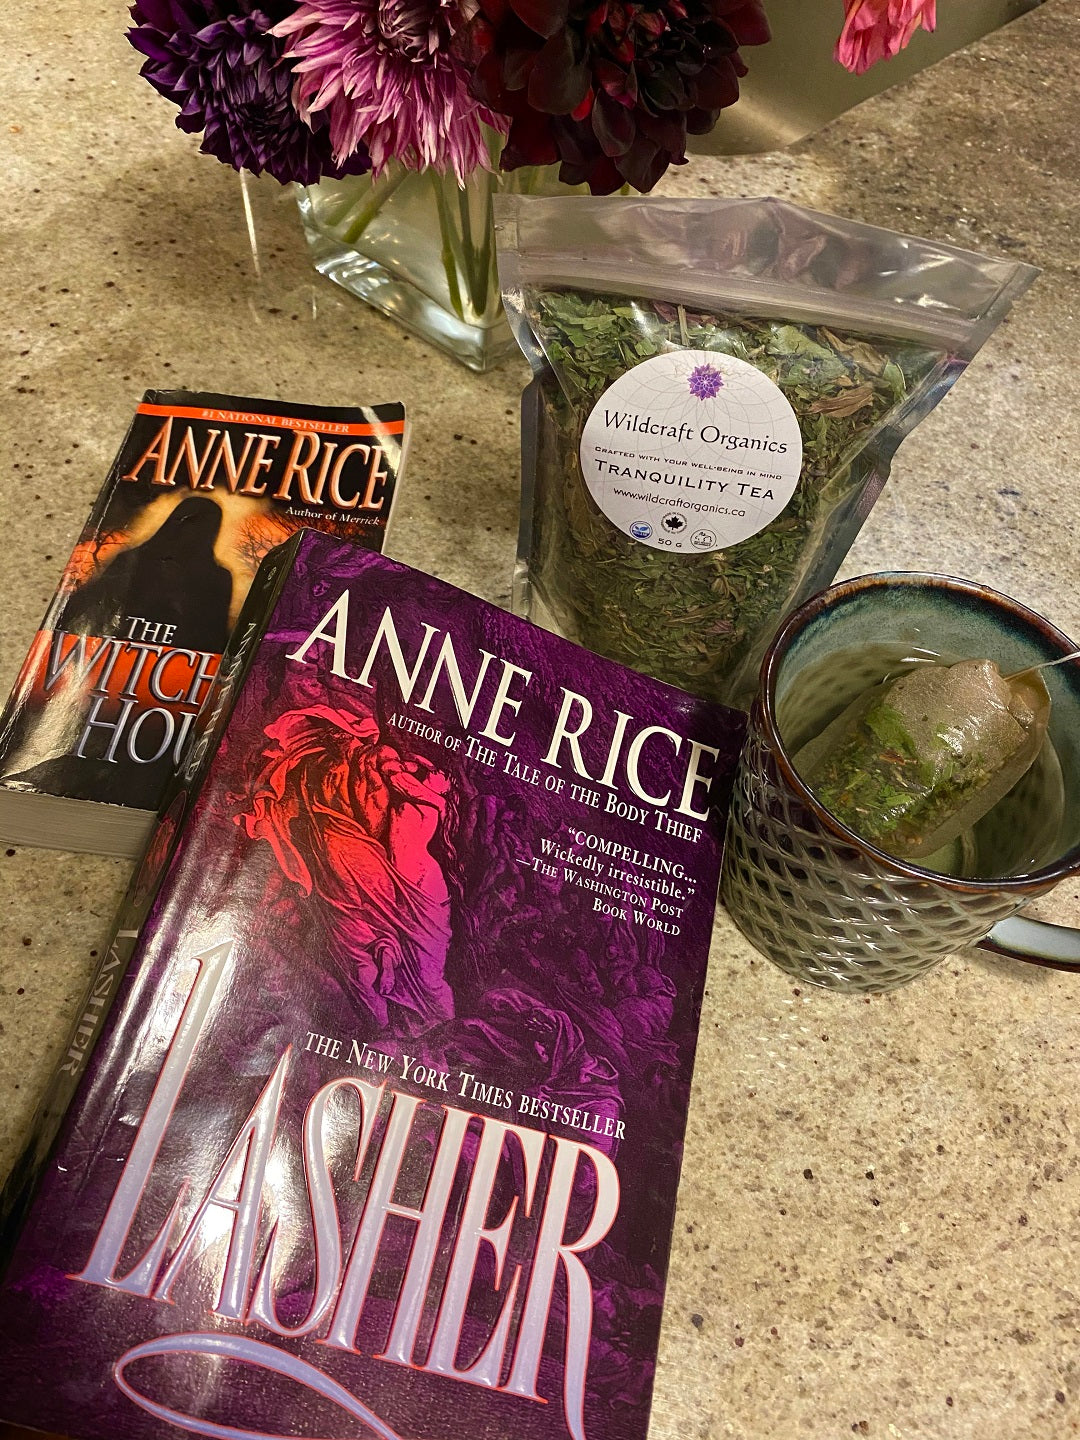 Tranquillity tea and Books by Anne Rice